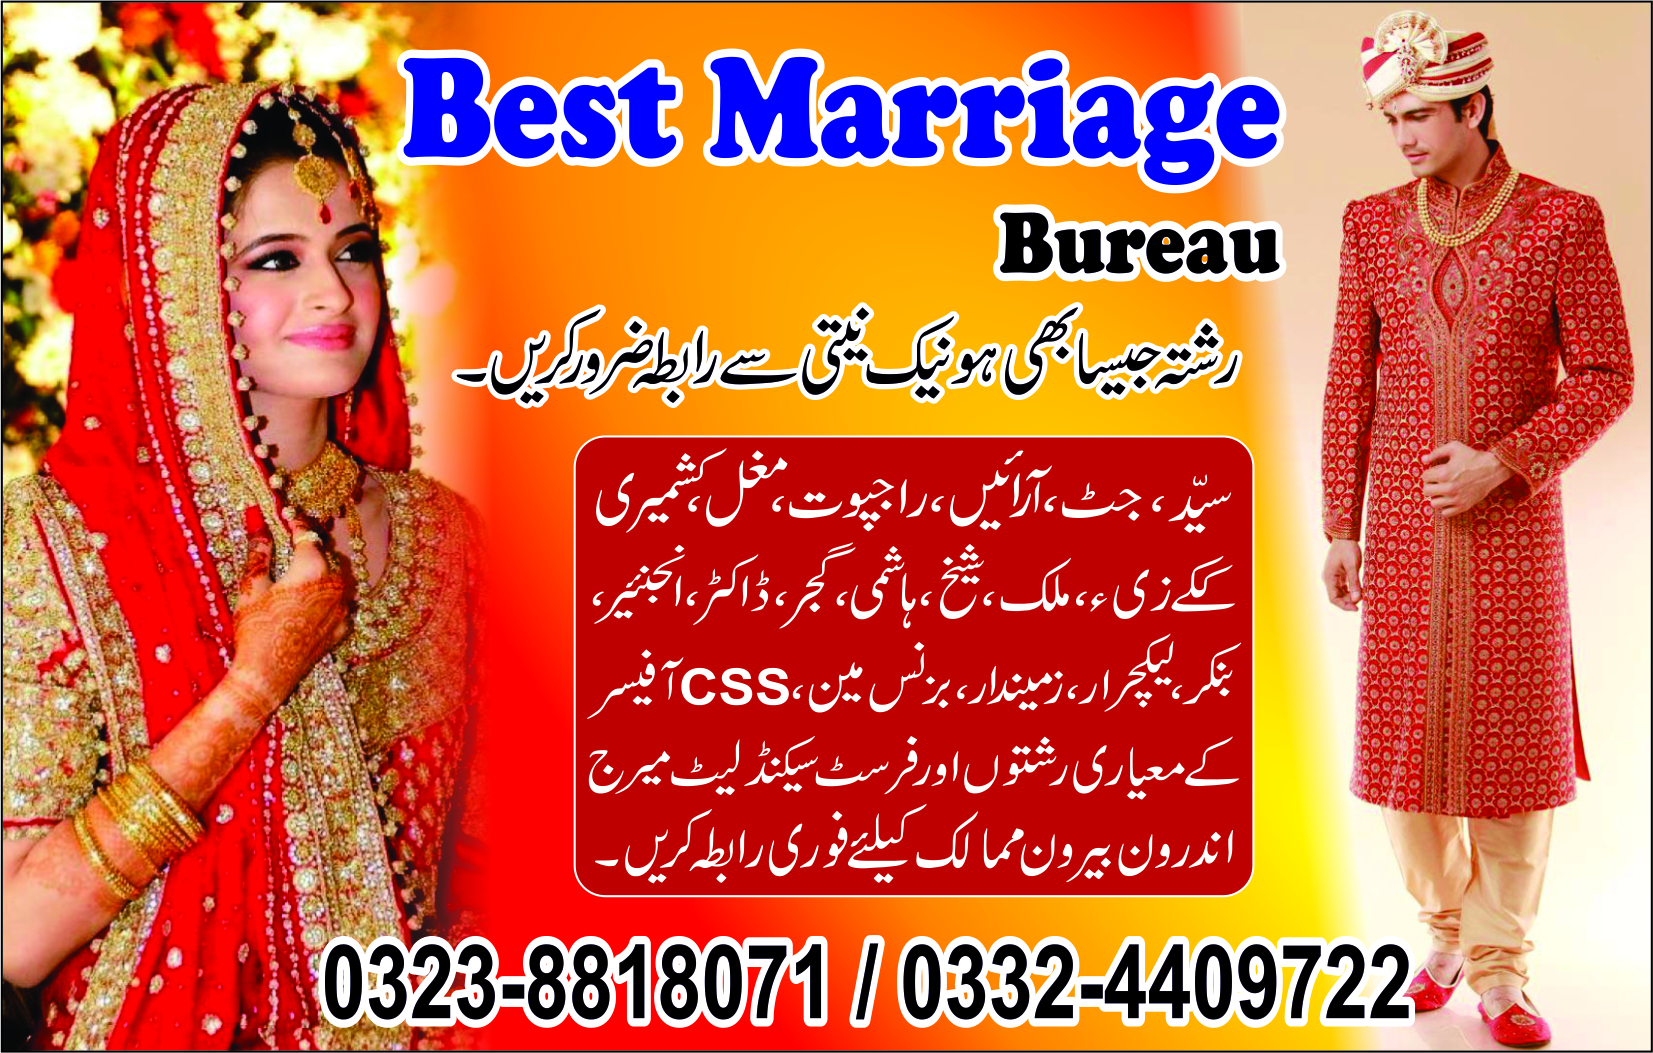 arain marriage bureau lahore - BEST MARRIAGE BUREAU